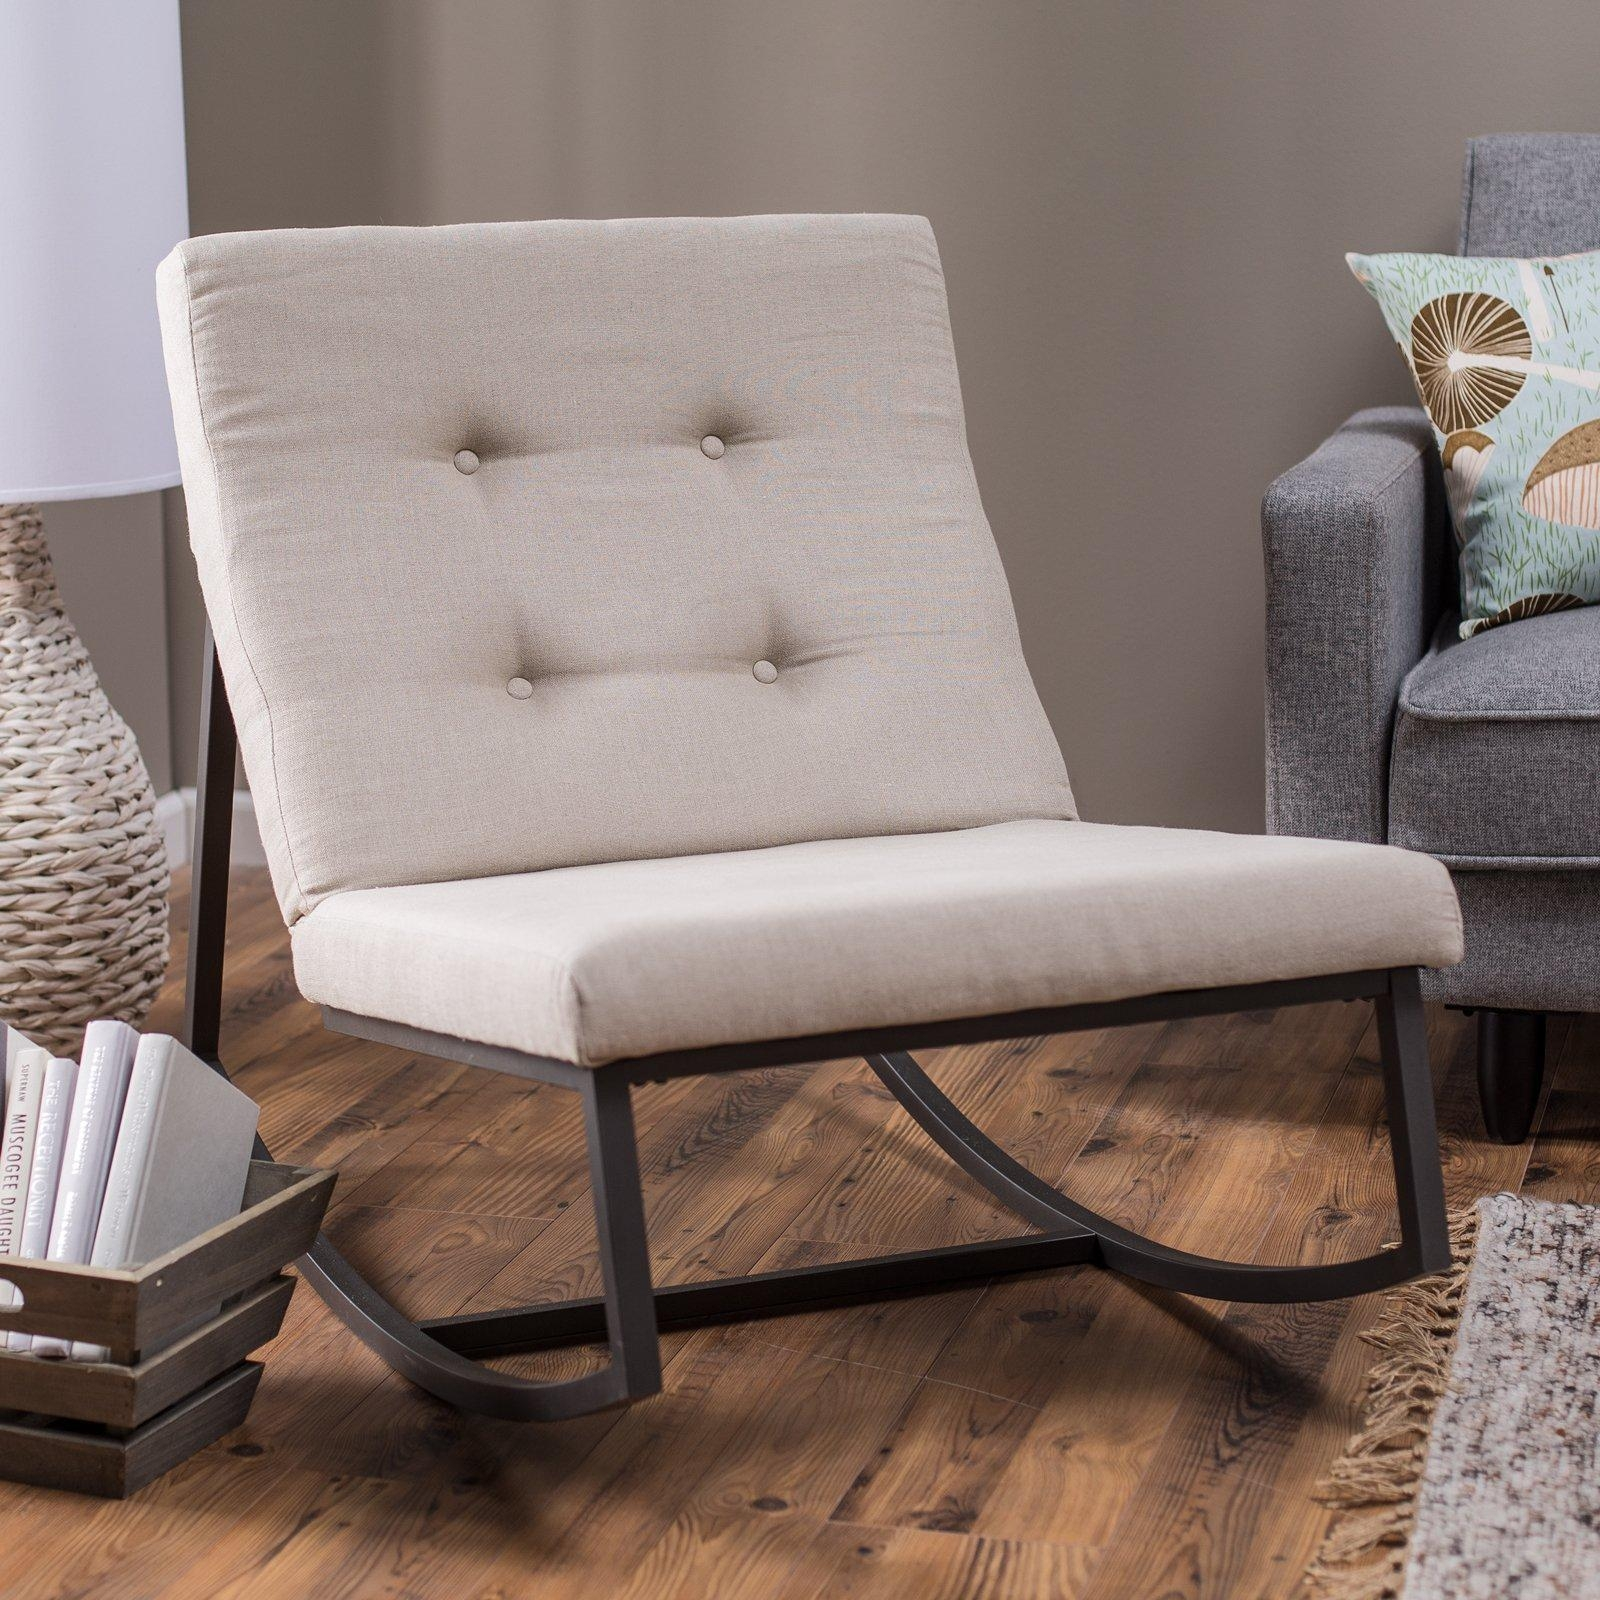 sofa rocking chair high quality inexpensive 20 top chairs ideas